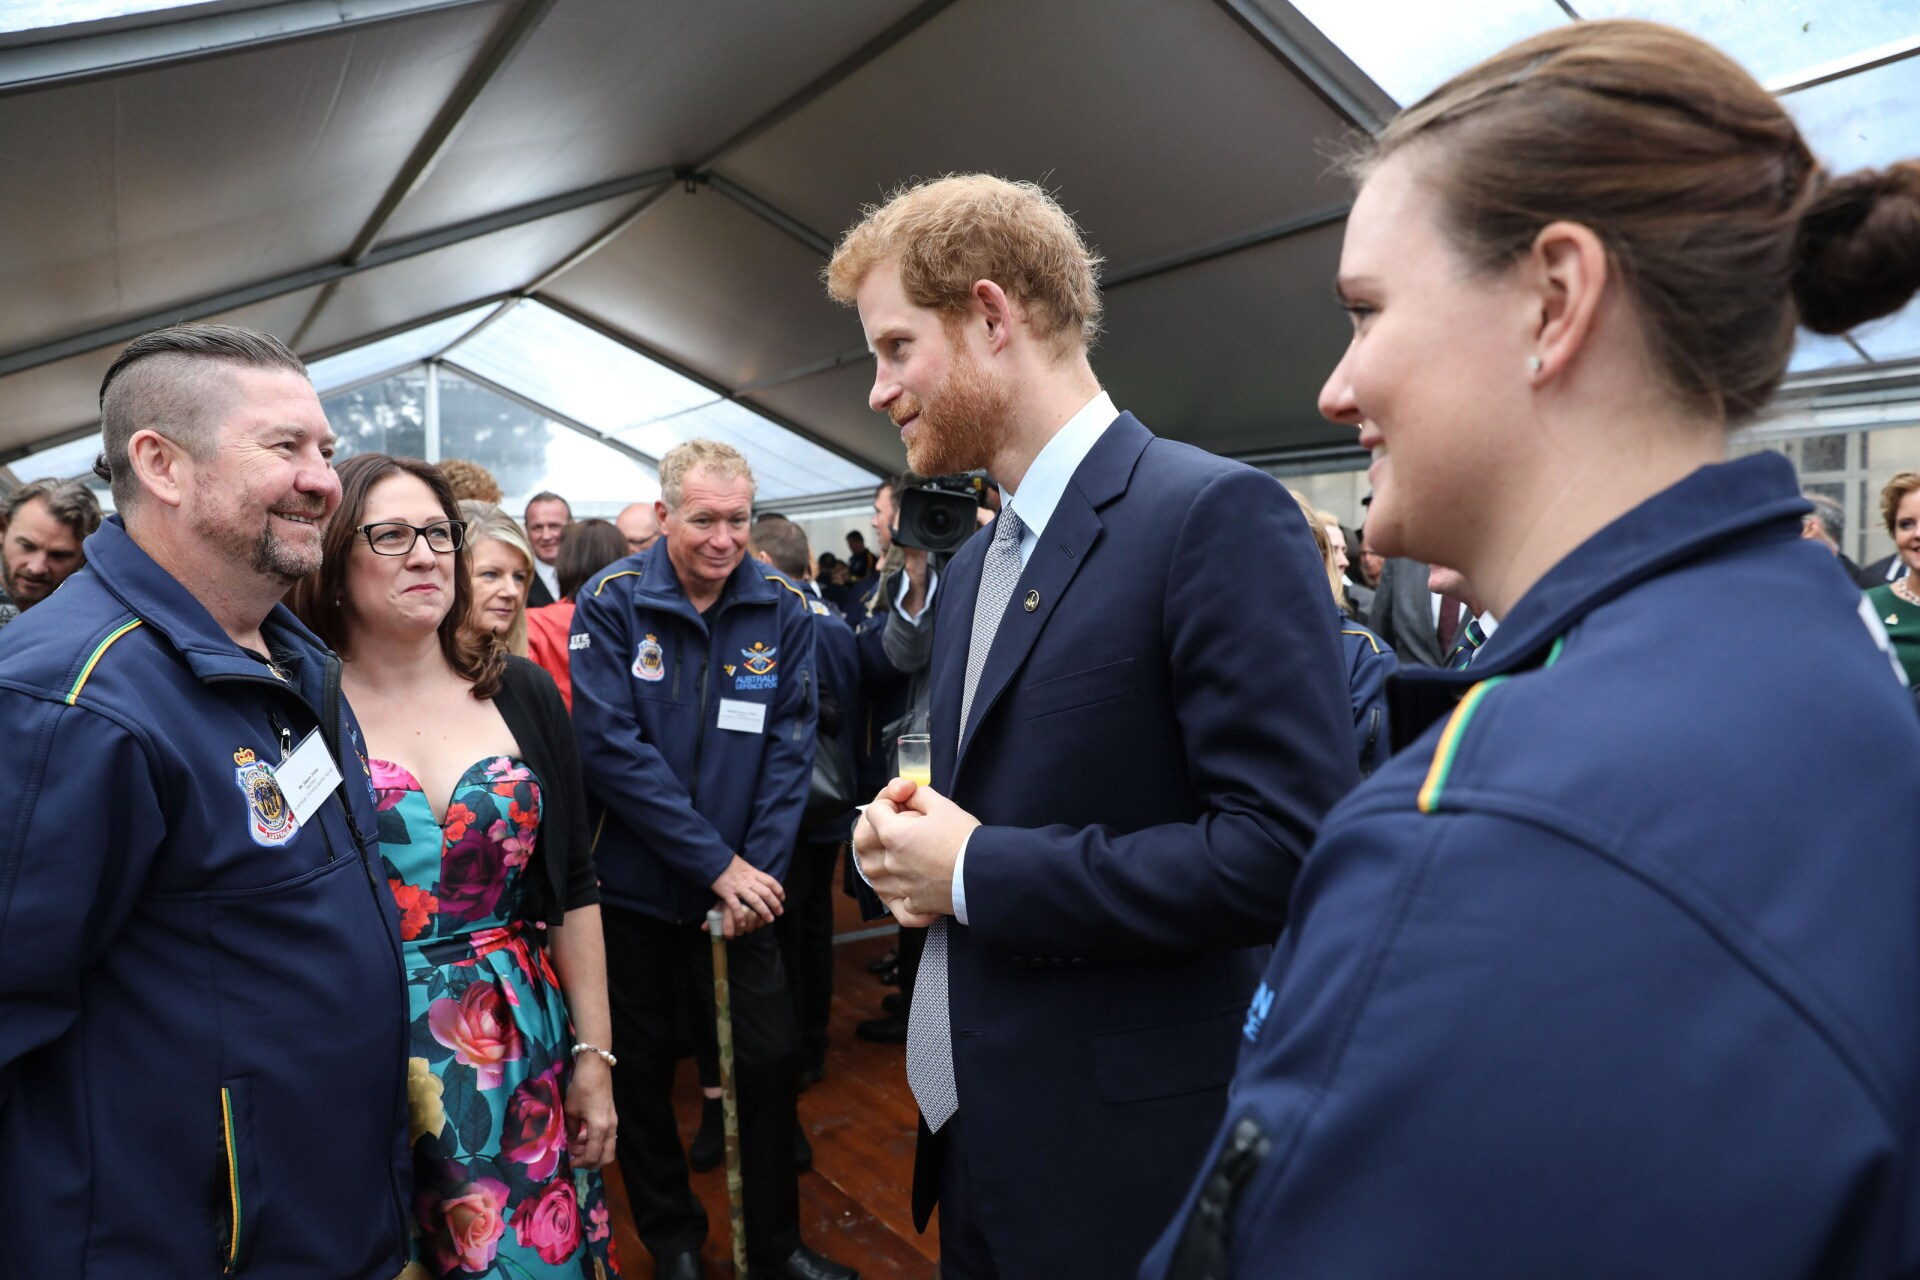 Australian team announced for Prince Harry's Invictus Games